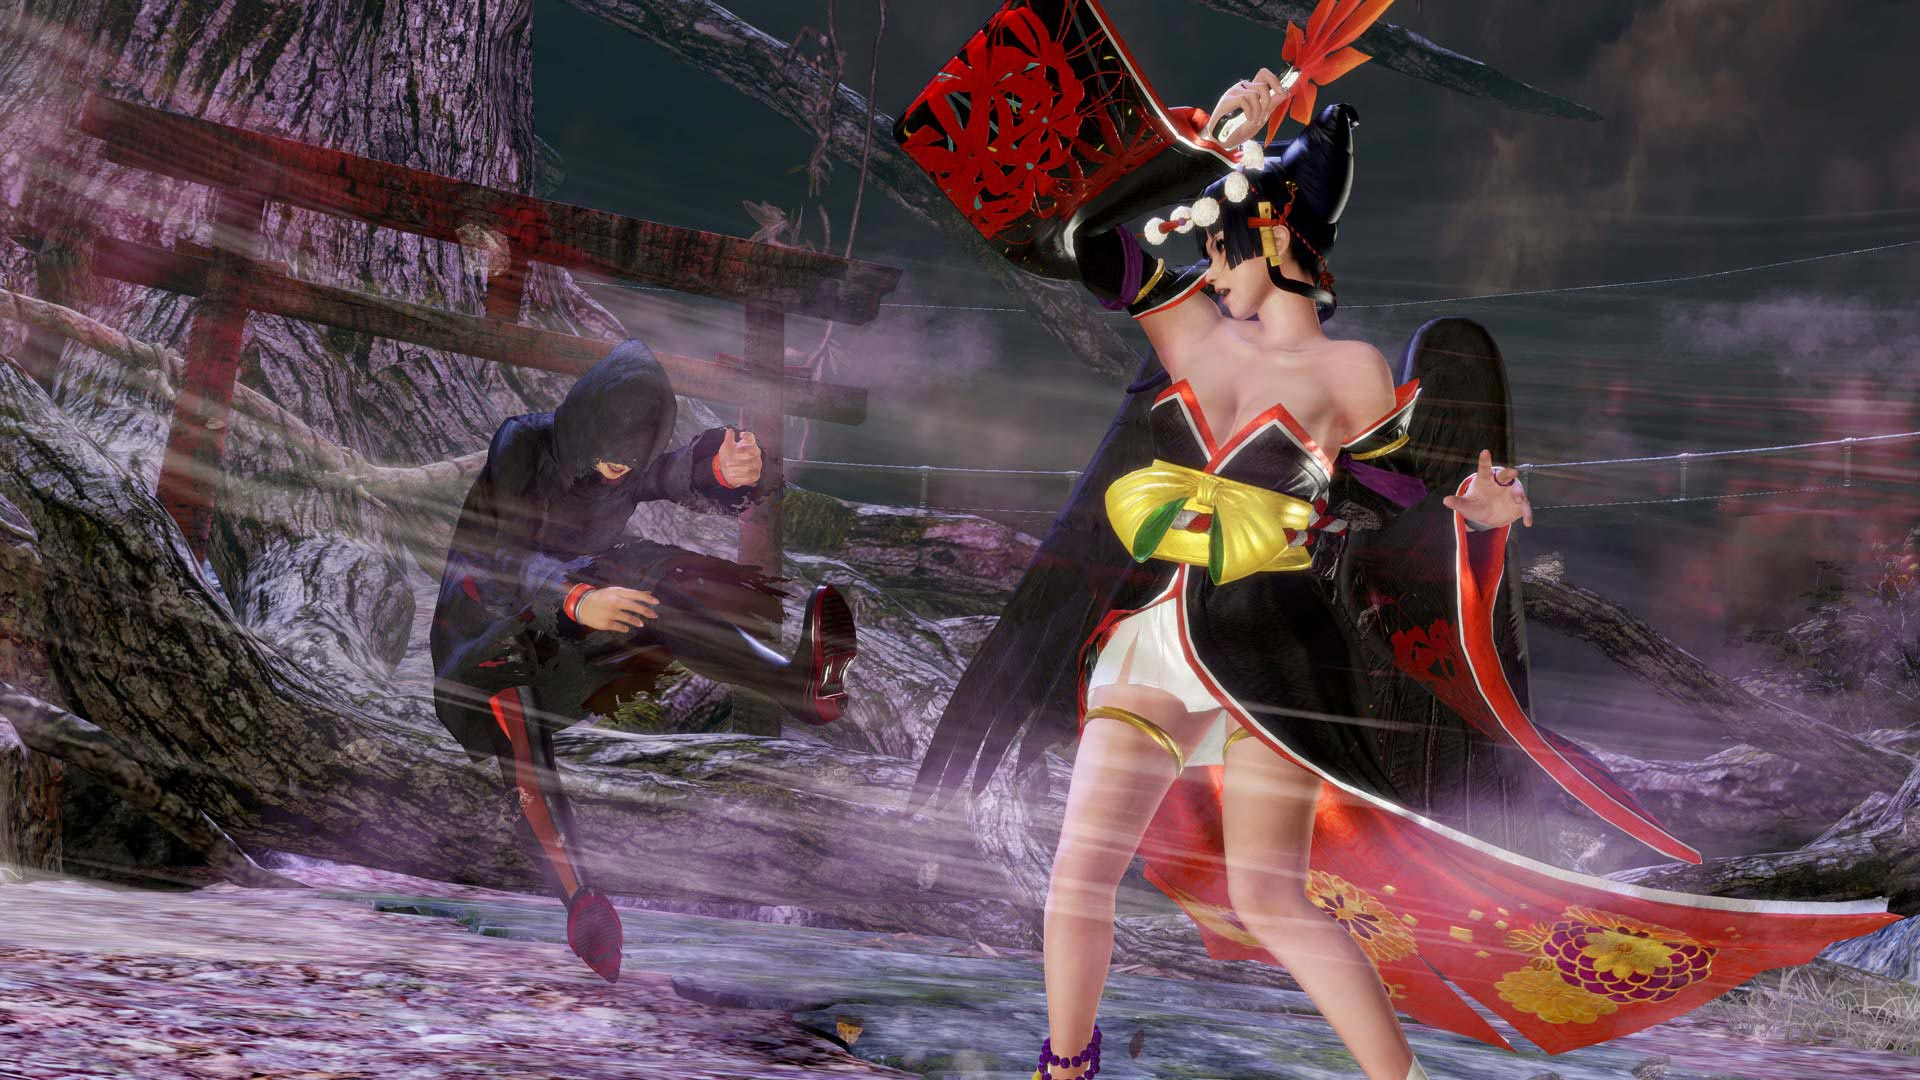 Dead or Alive 6 Nyotengu and Phase 4 2 out of 9 image gallery